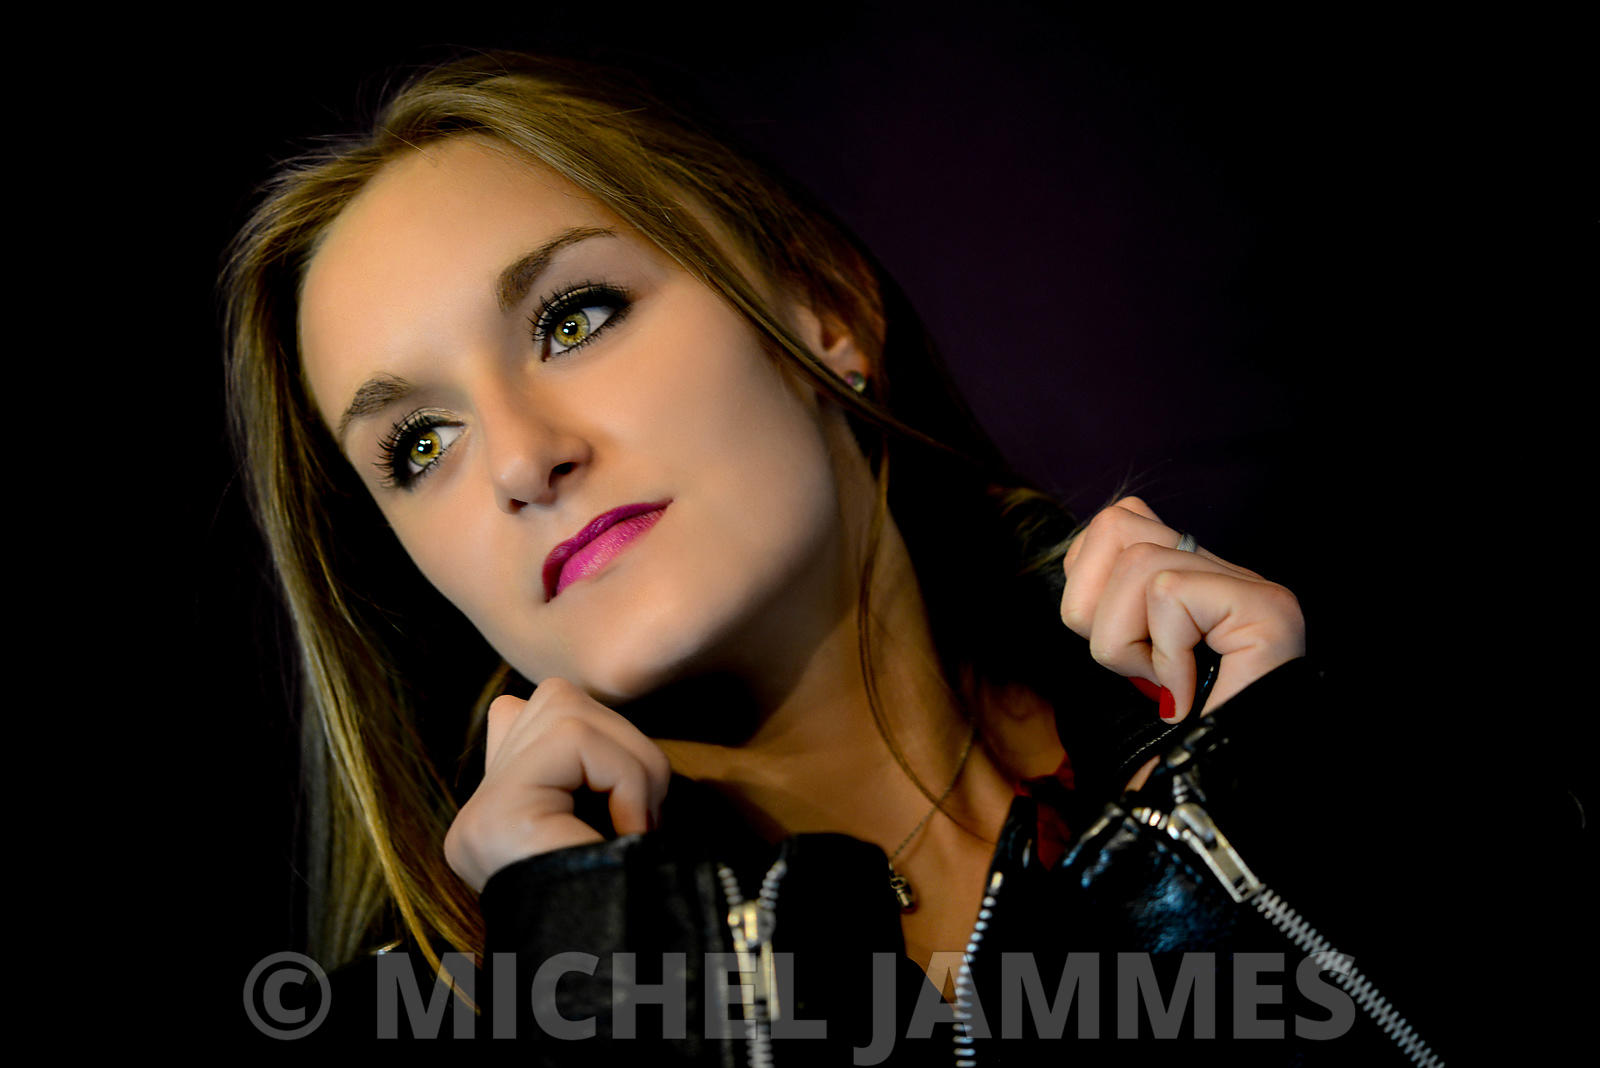 PHOTO MODELE EN STUDIO